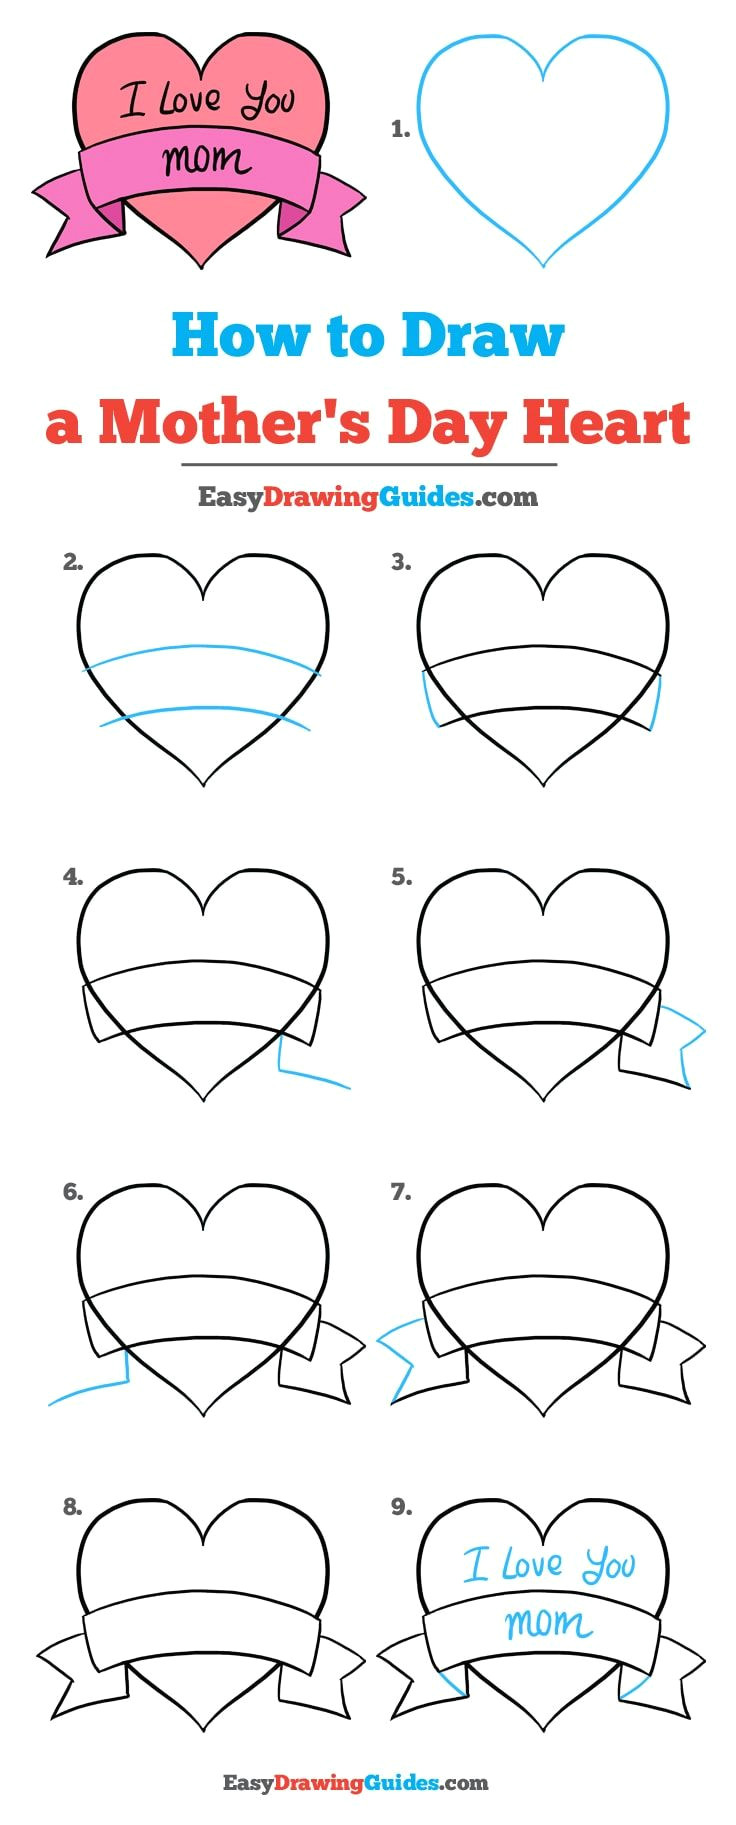 Easy Drawings for Your Mom How to Draw A Mother S Day Heart Really Easy Drawing Tutorial